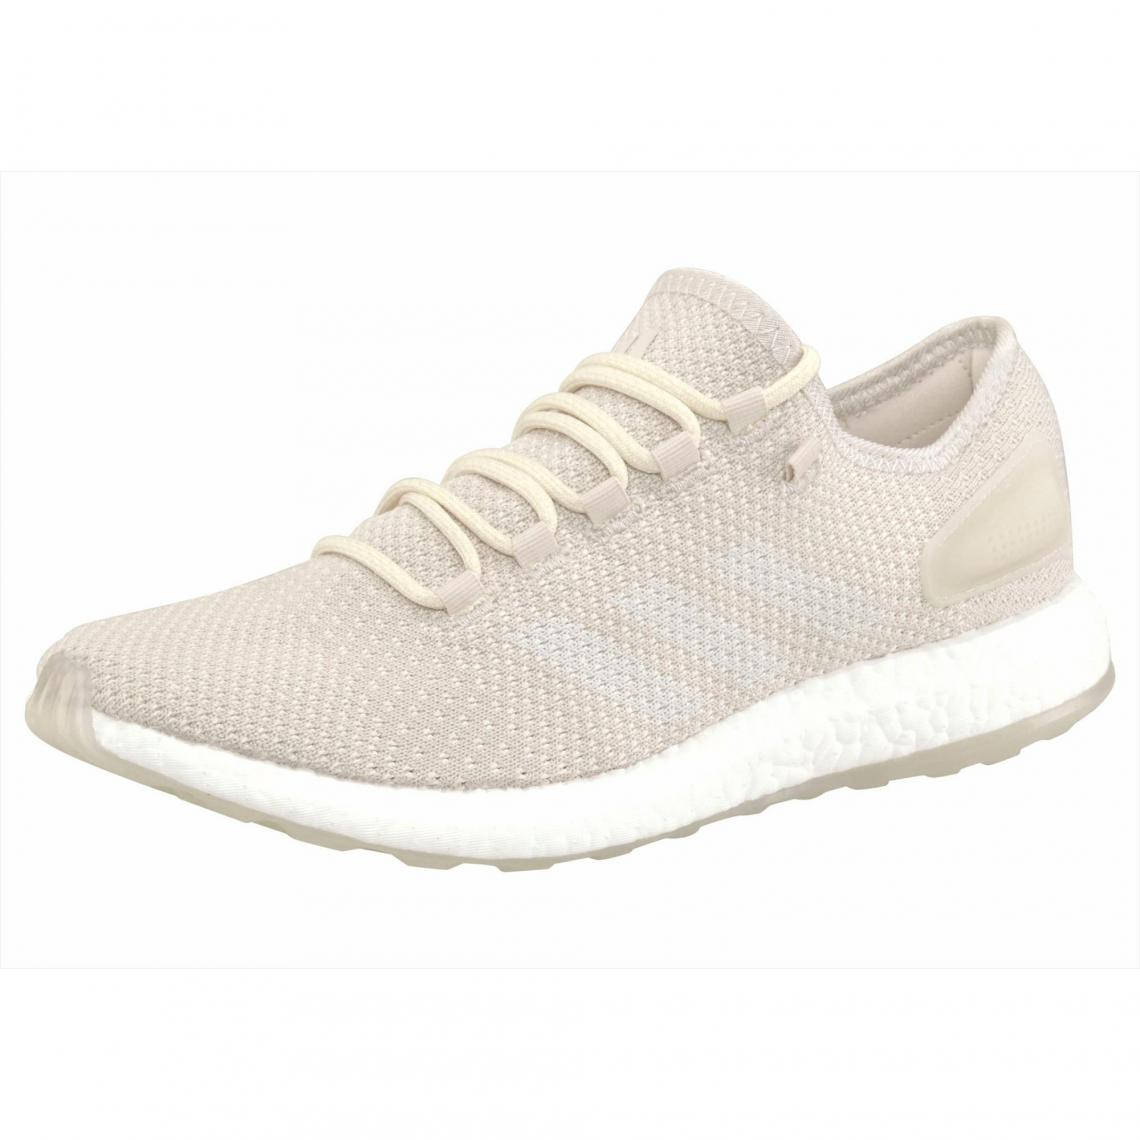 adidas chaussures de running pure boost homme